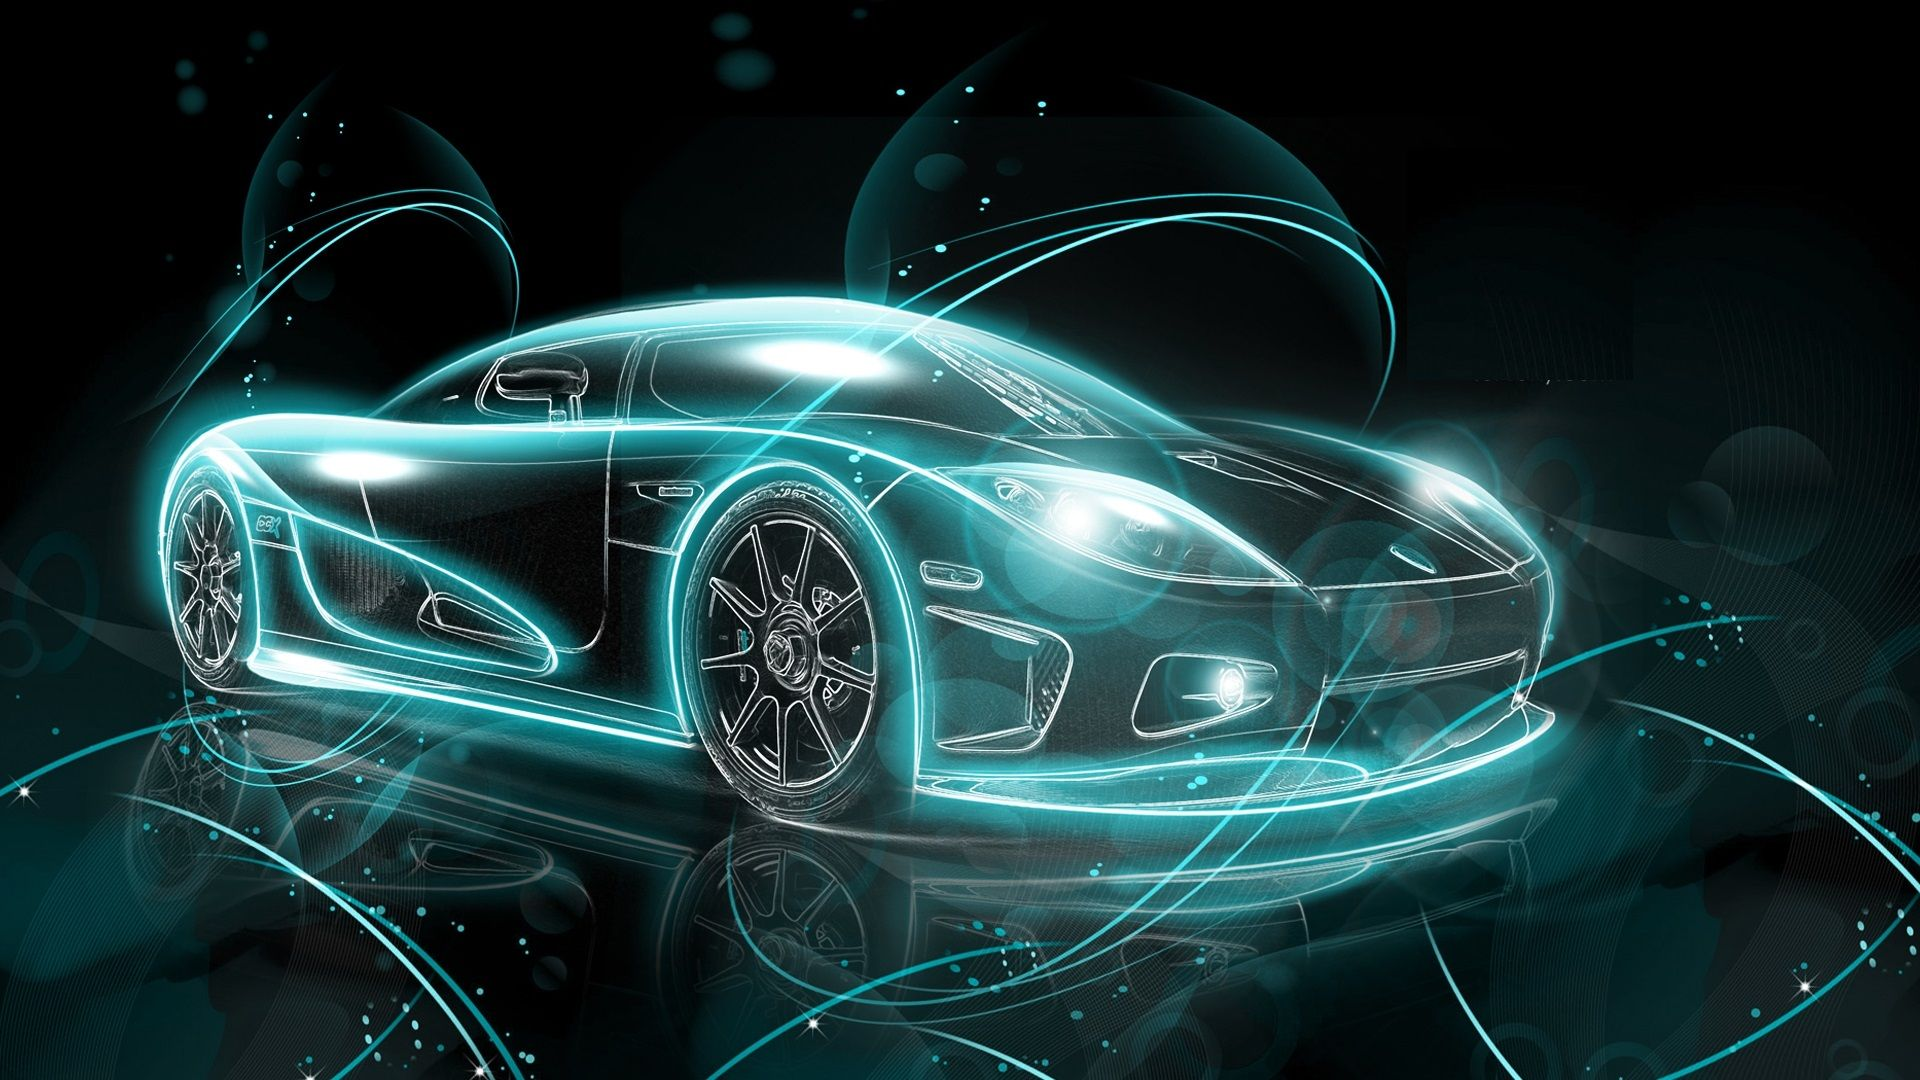 Abstract Sports Car Hd Wallpaper Car Wallpapers Neon Car Cool Car Pictures Car Hd